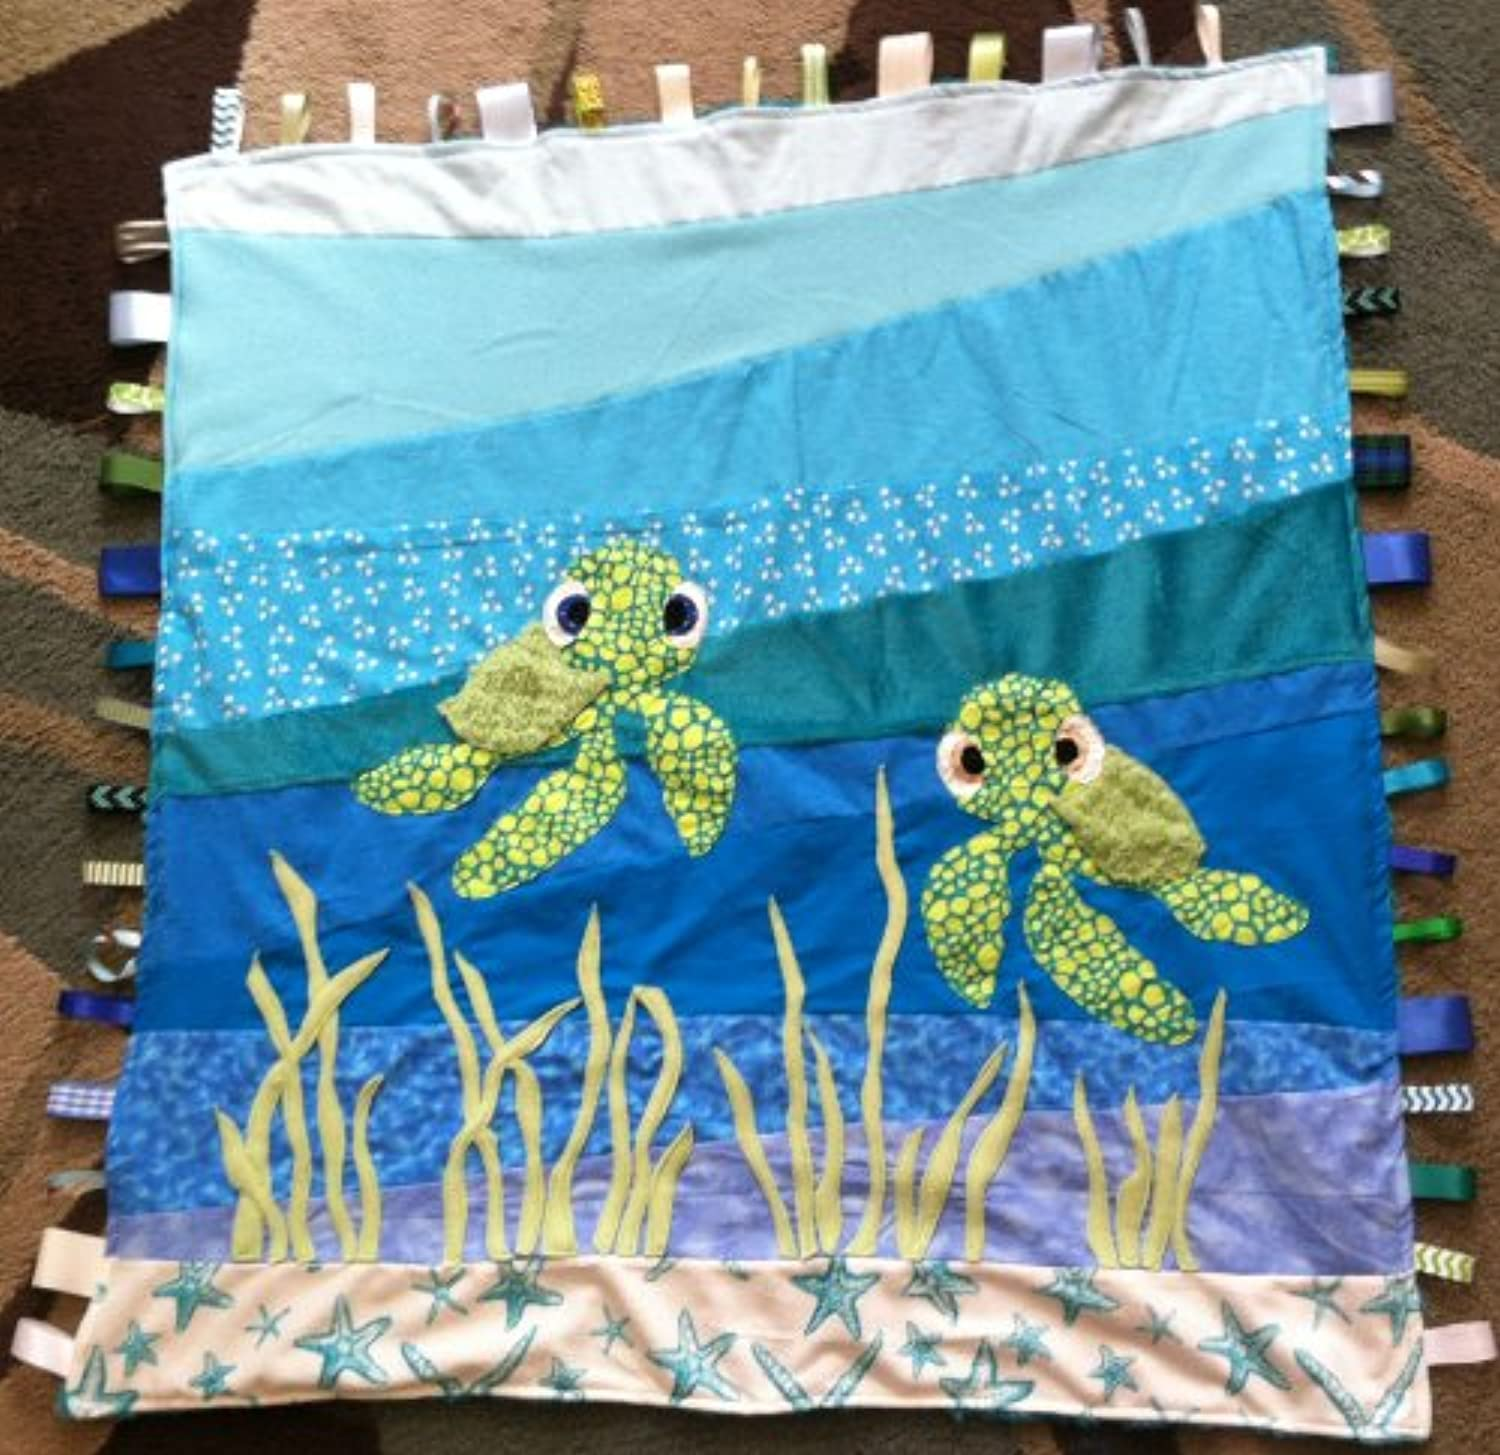 Baby Sea Turtle ~ Ribbon Baby Blanket with Ribbon Tabs 37 X 40 by Abuela Chachy's